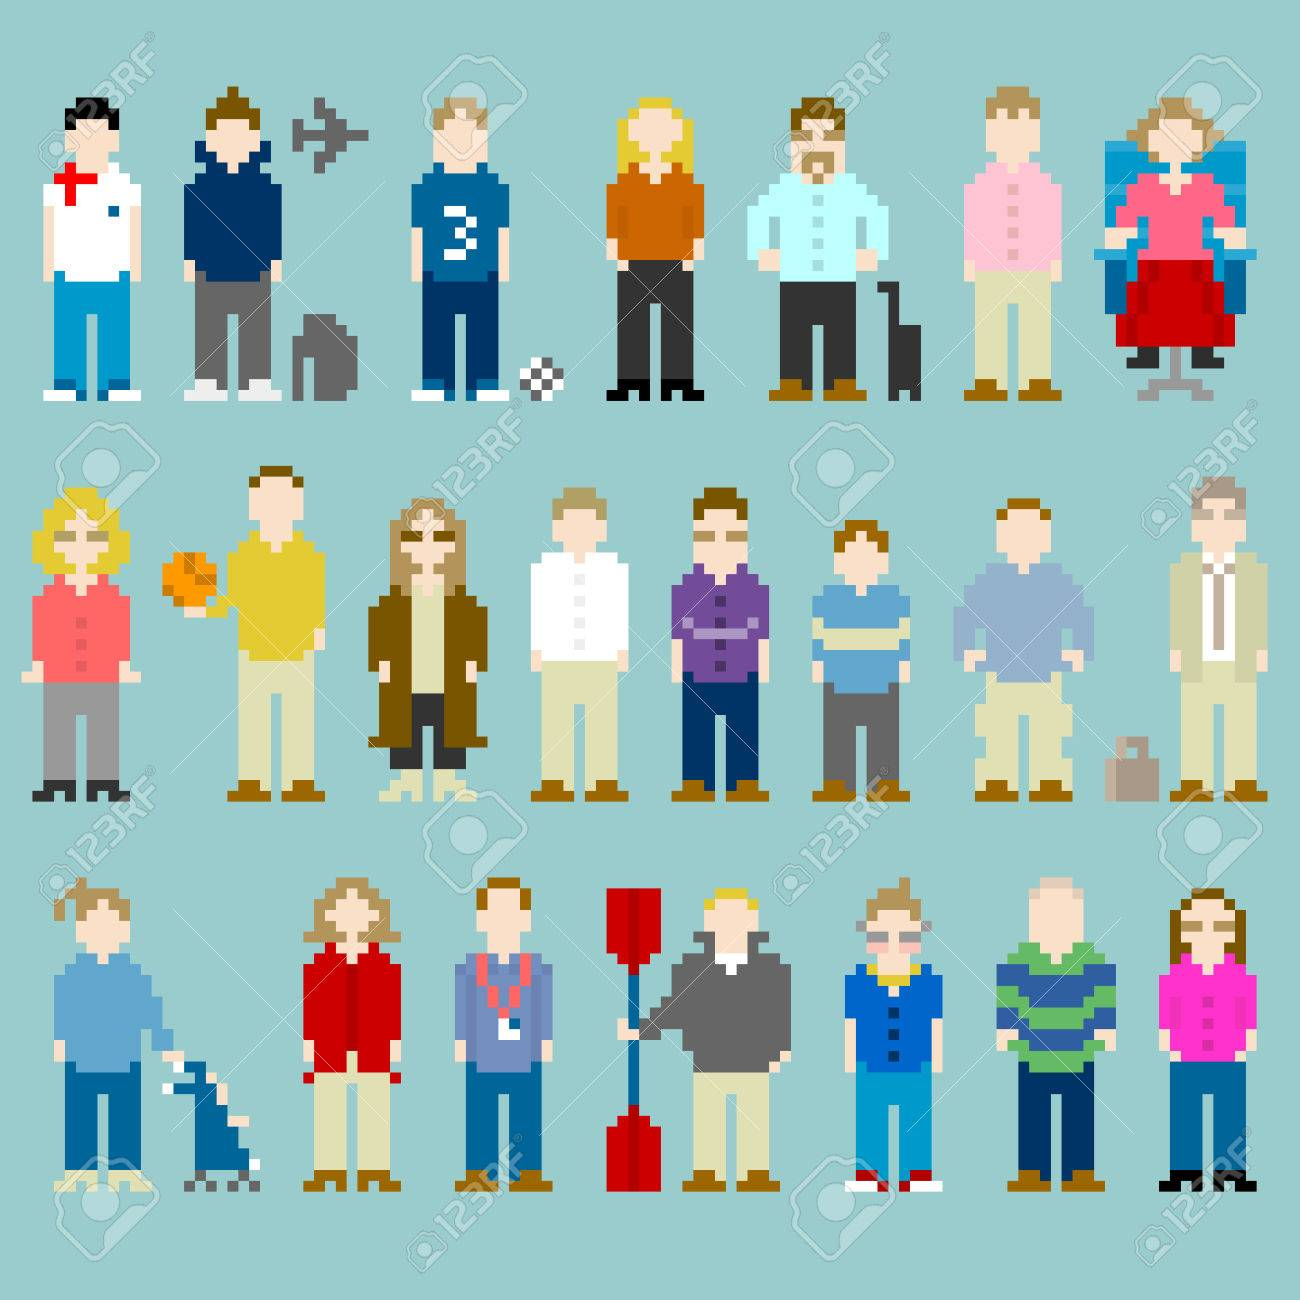 Pixel-art representations of people from the office, former work colleagues Stock Vector - 29478181